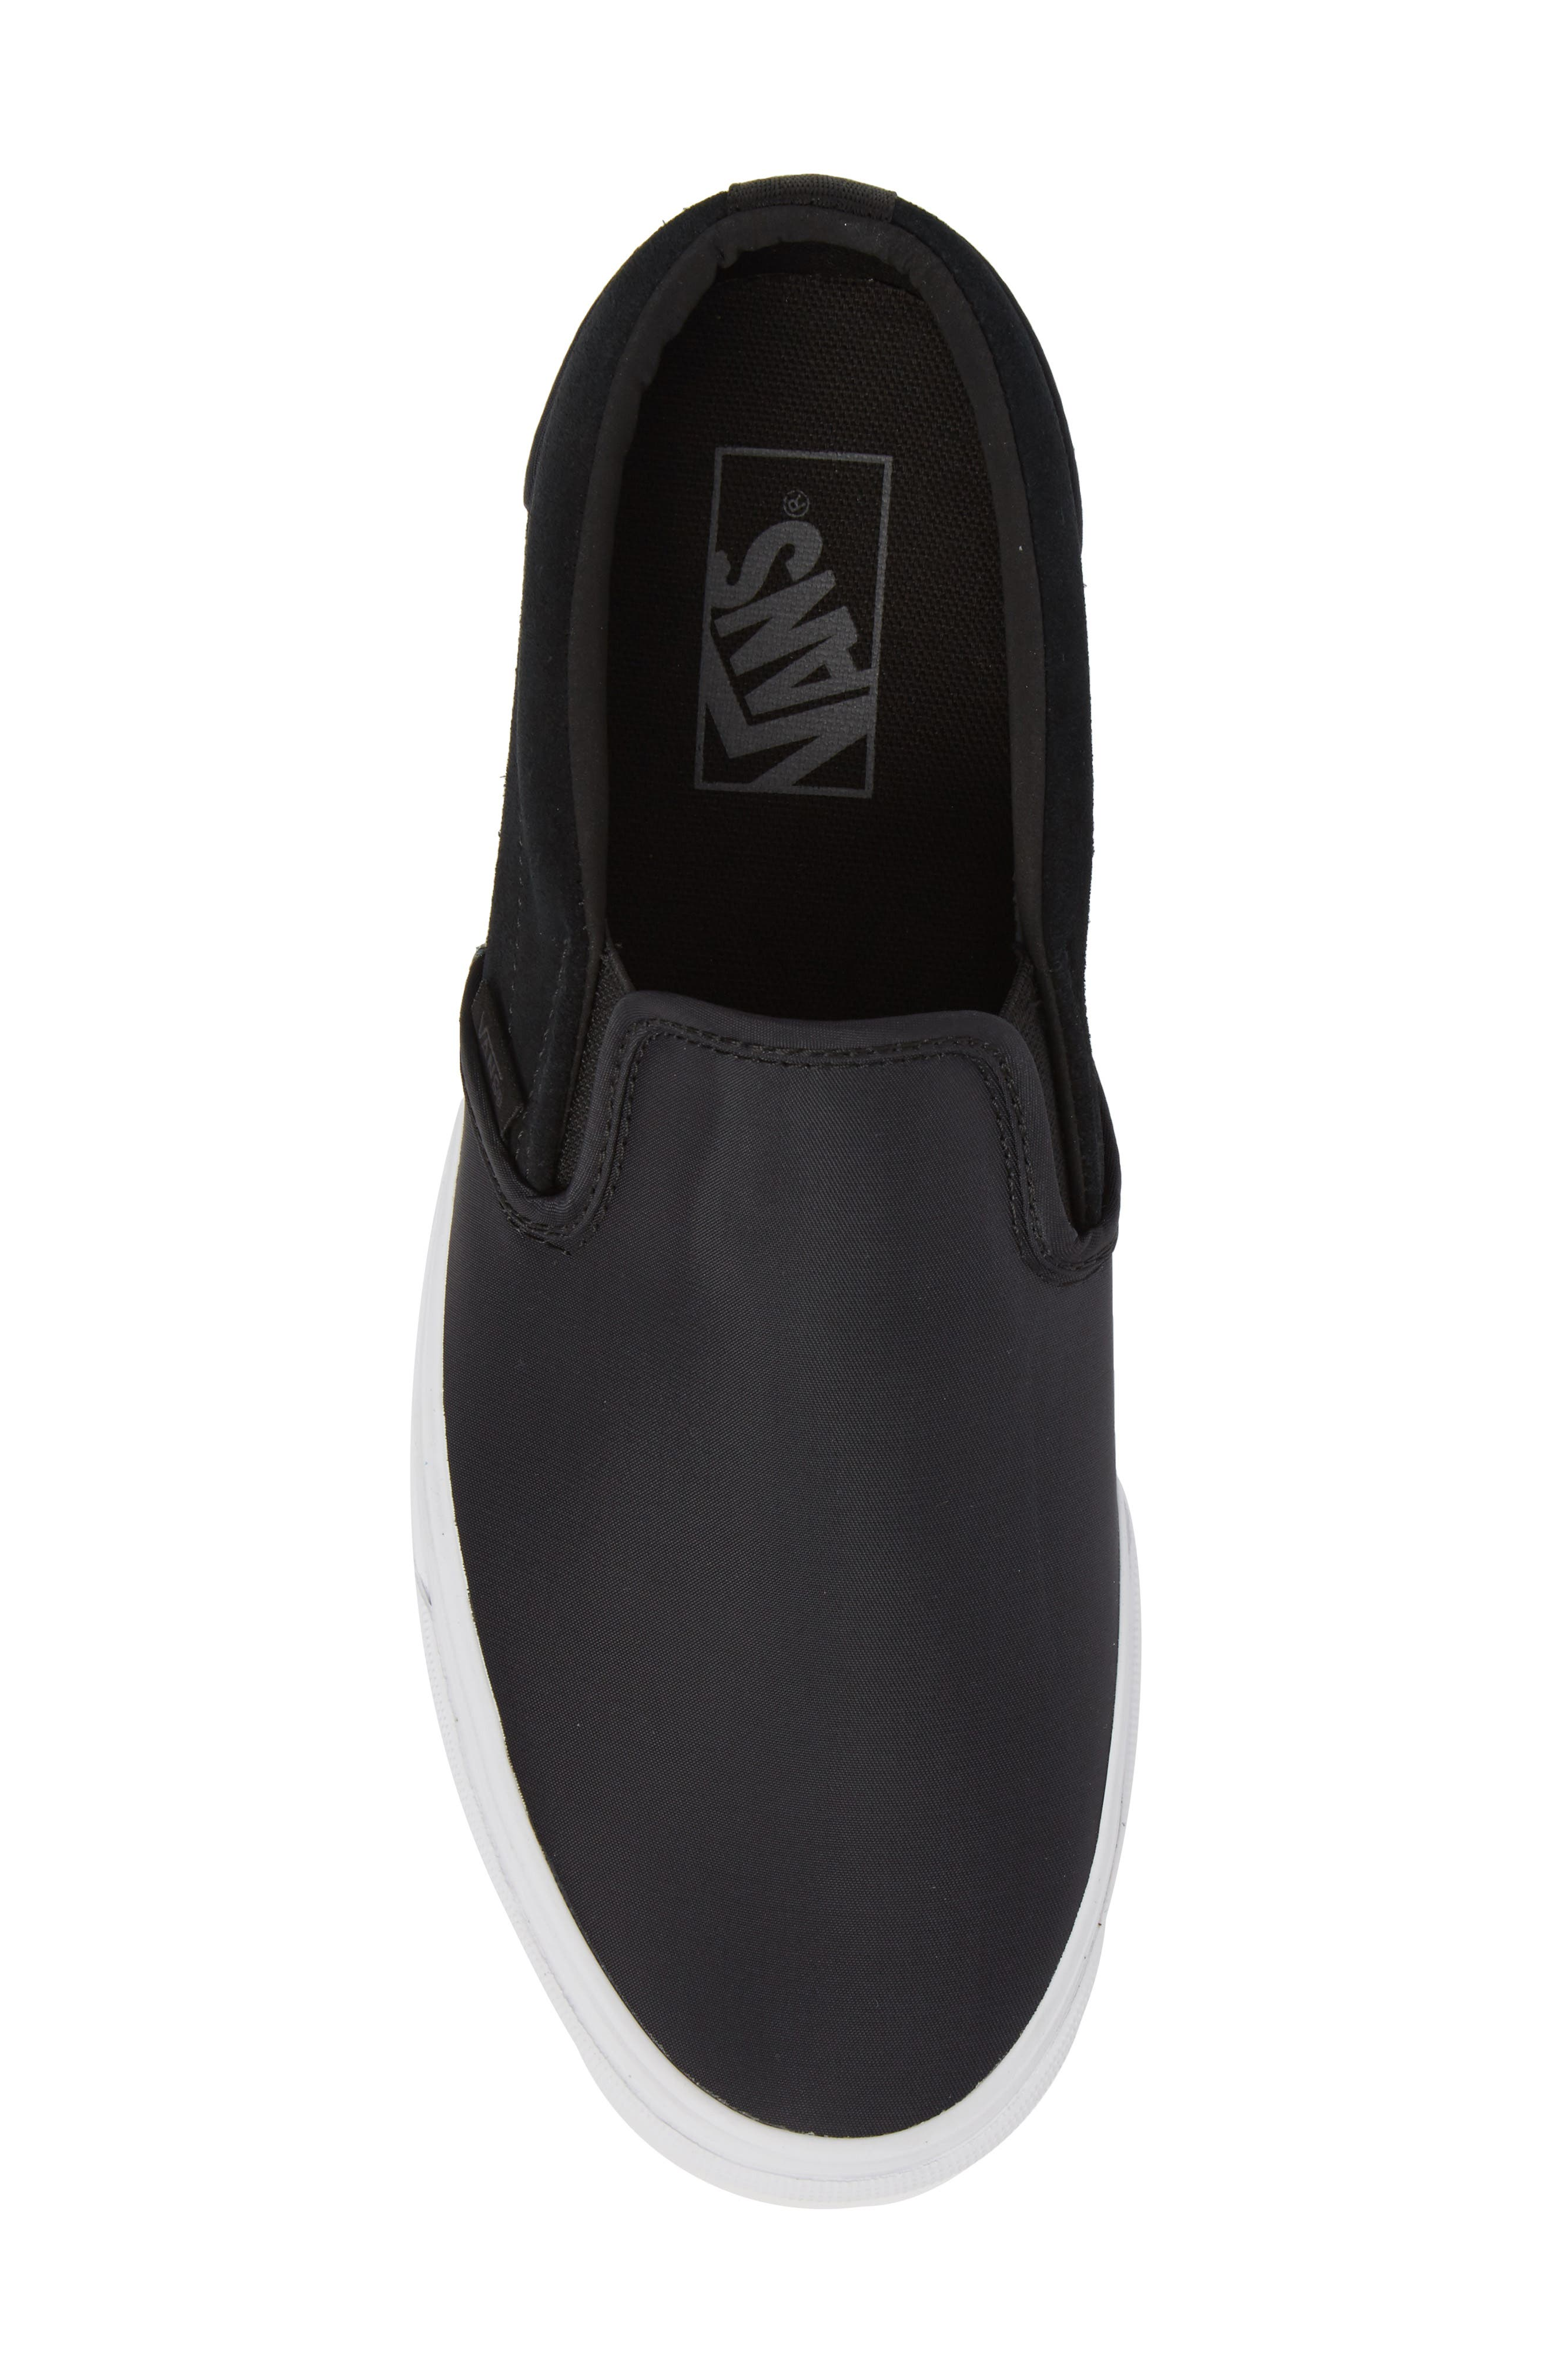 Surplus Nylon Slip-On Sneaker,                             Alternate thumbnail 5, color,                             001